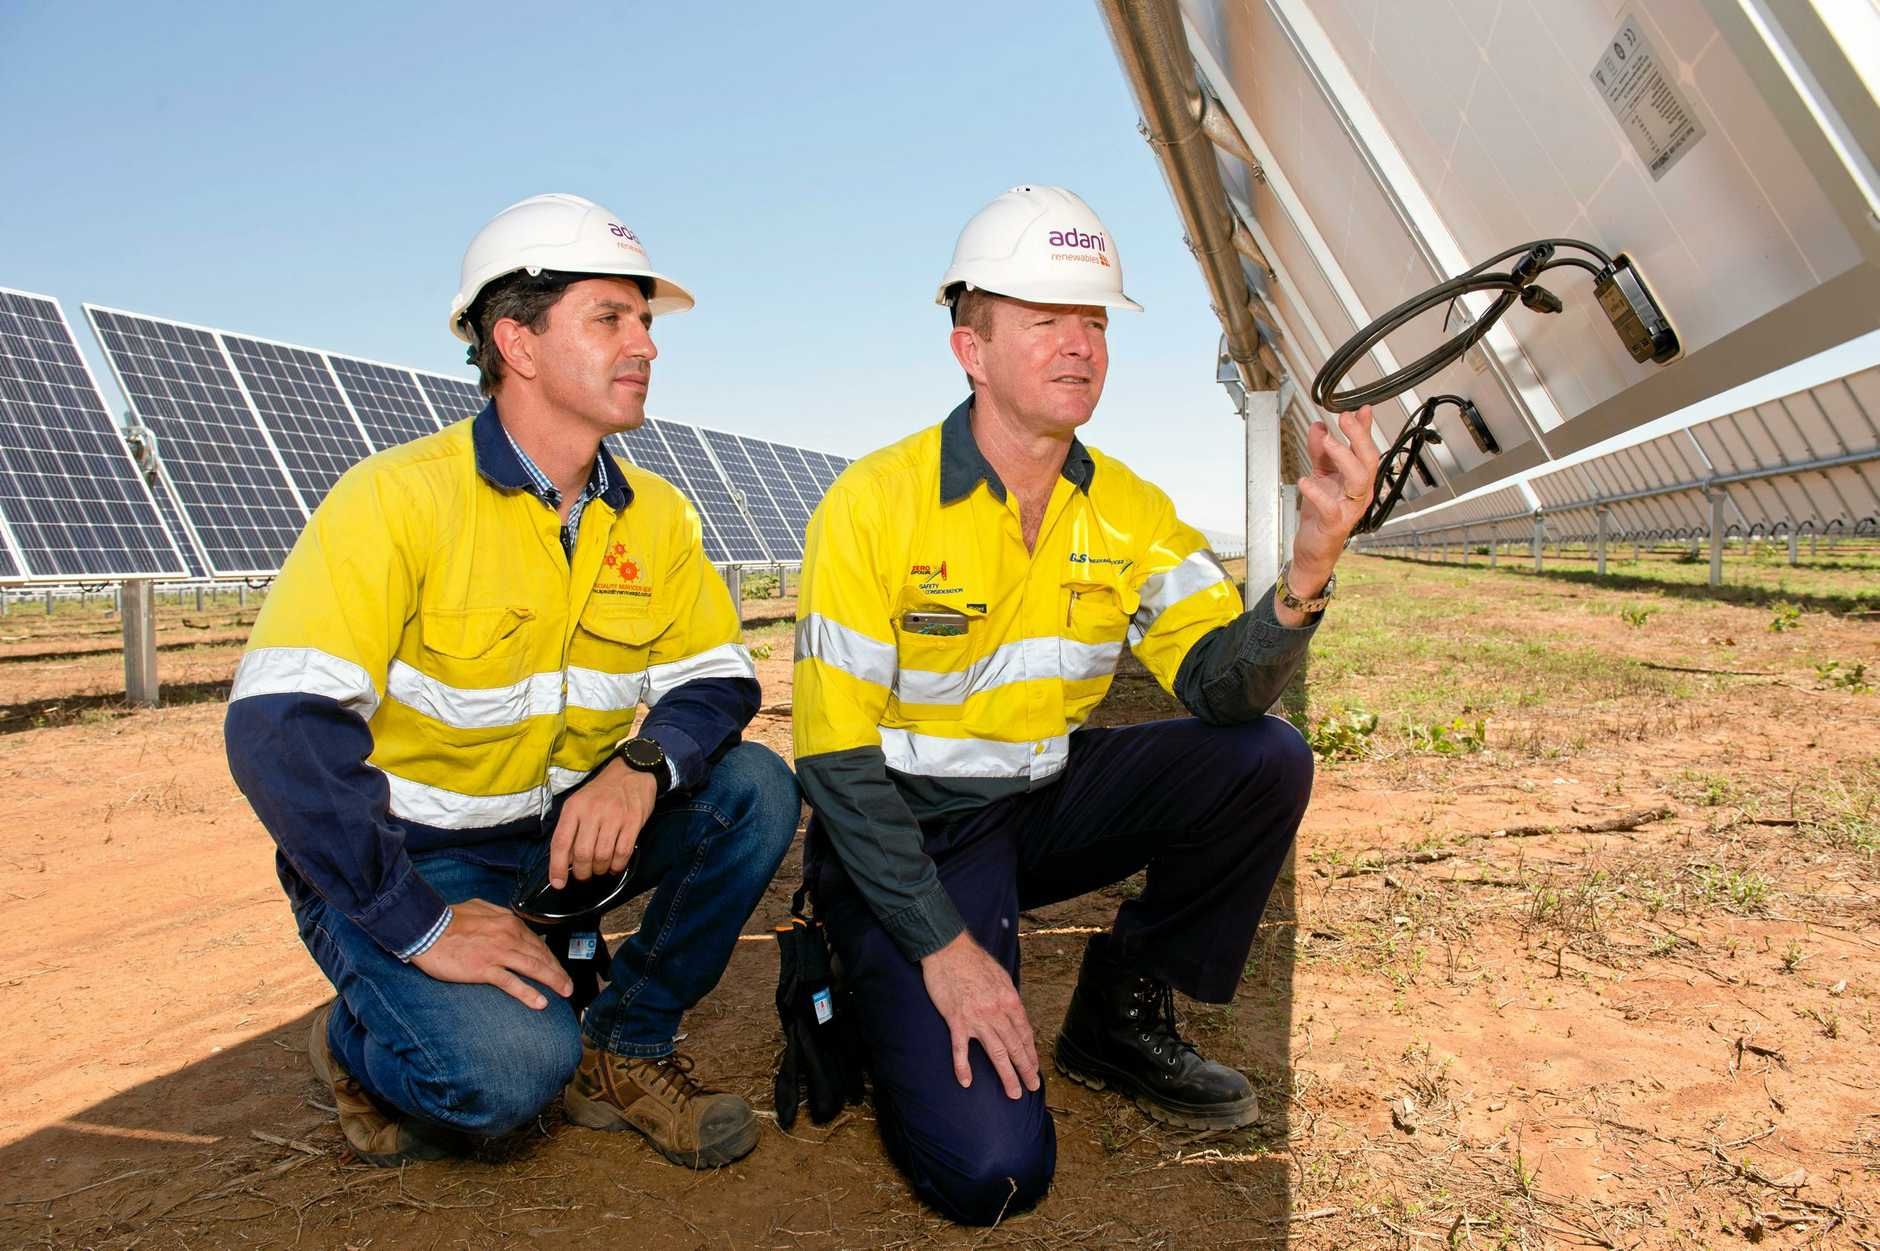 Mick Crowe (right), managing director of G&S Engineering, inspects the wiring on the back of a solar panel with Ricardo Brotto, project engineer for Speciality Services, at the Adani Renewables Australia's Rugby Run solar farm.